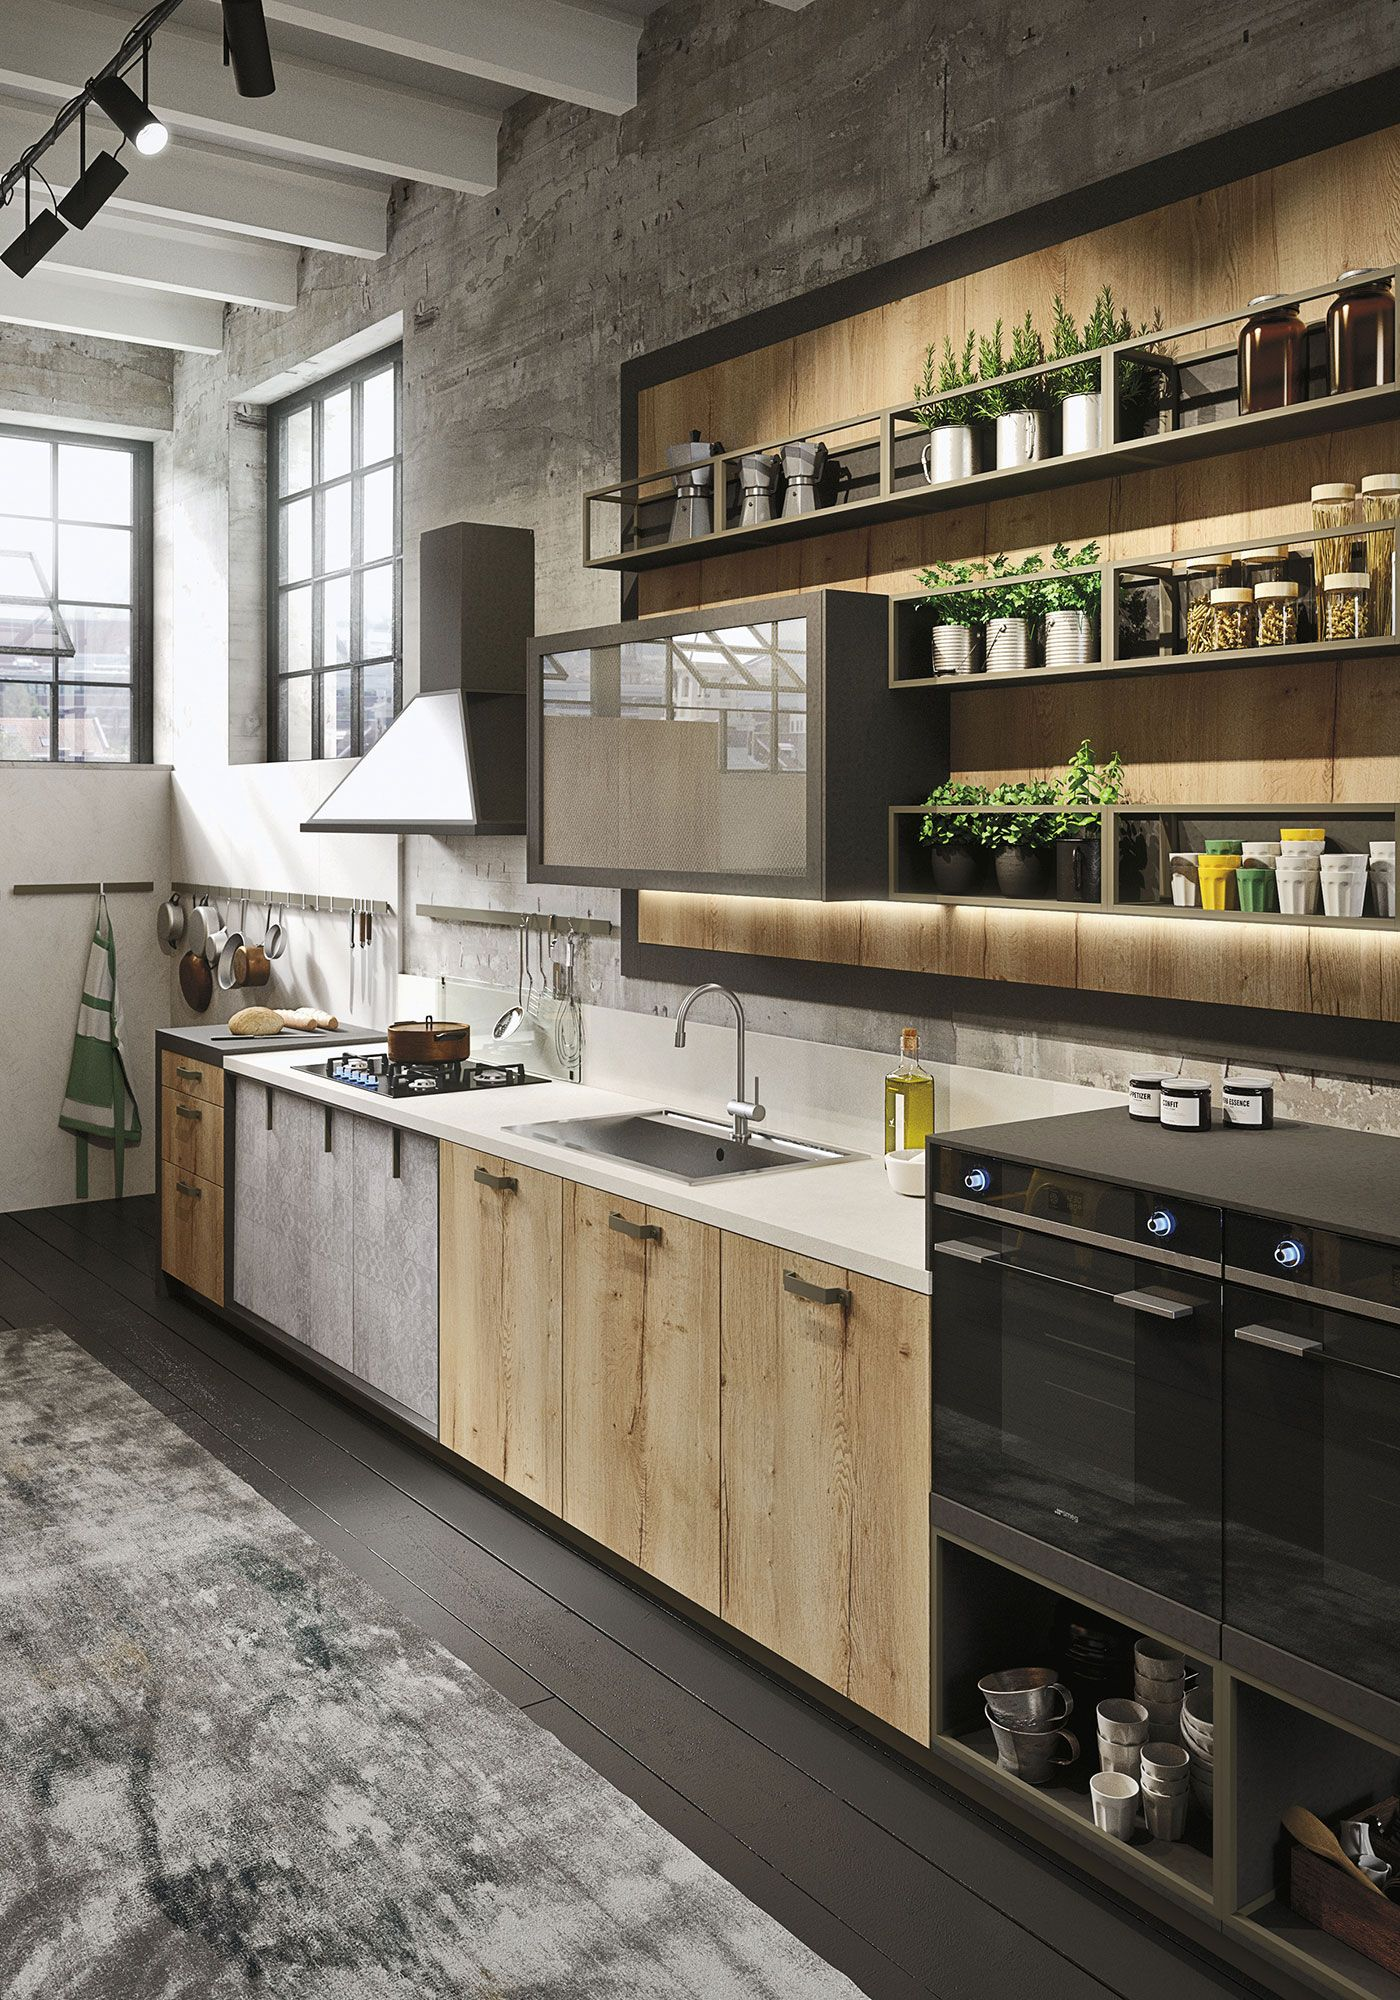 3 methods for Industrial Kitchen Design